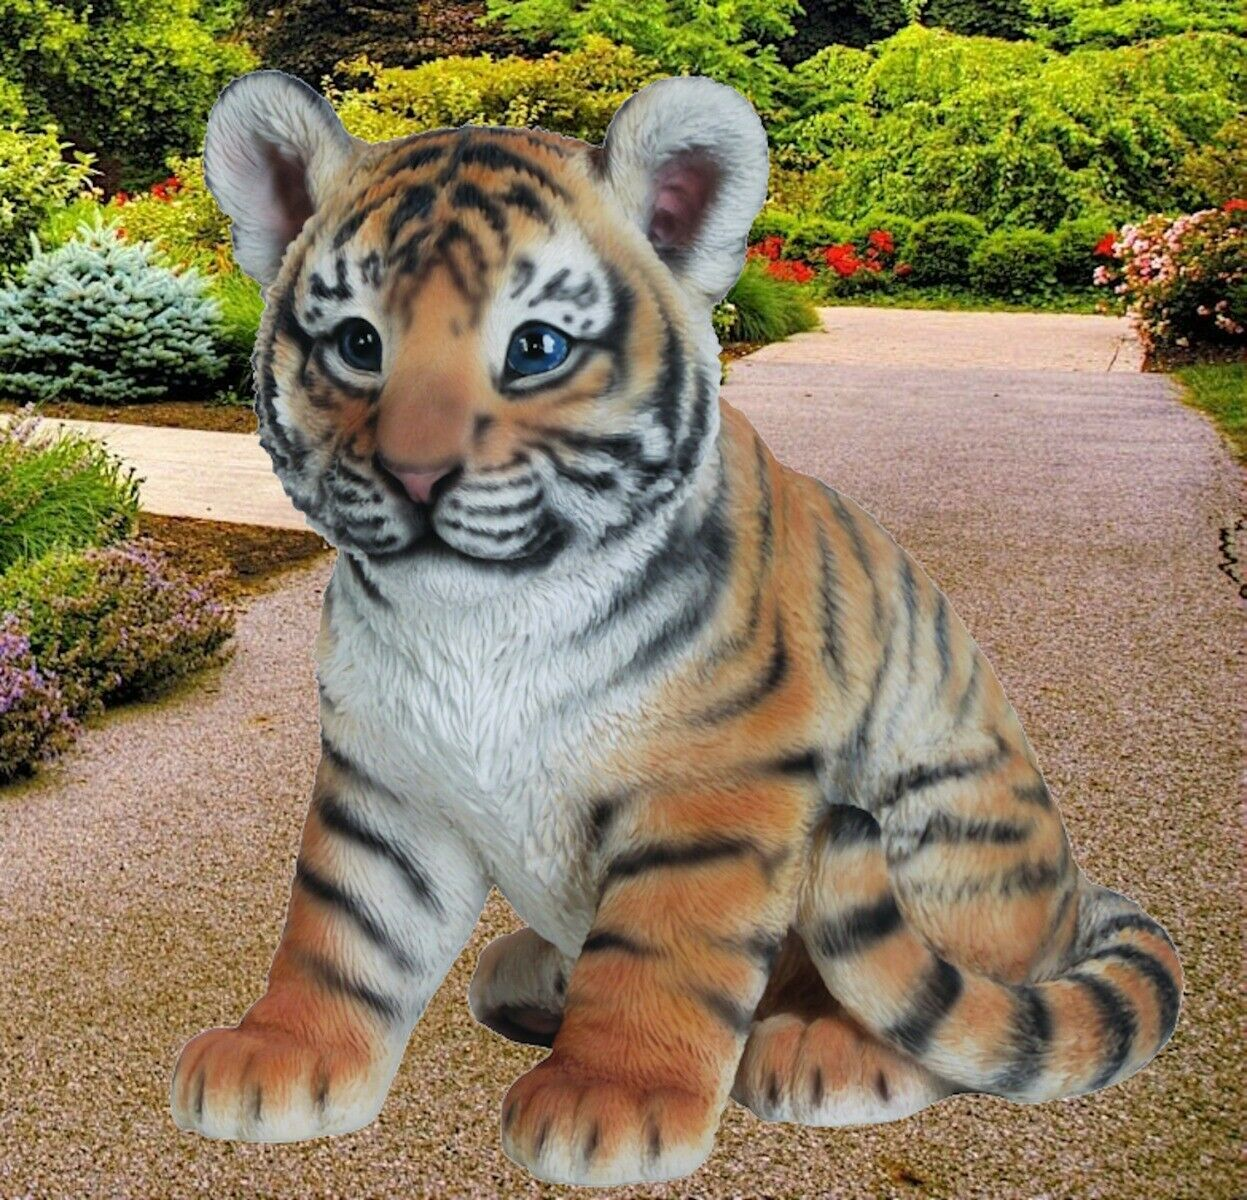 Real Life NEW Lifelike Garden Ornament Indoor or Outdoor Tiger Cub Zoo